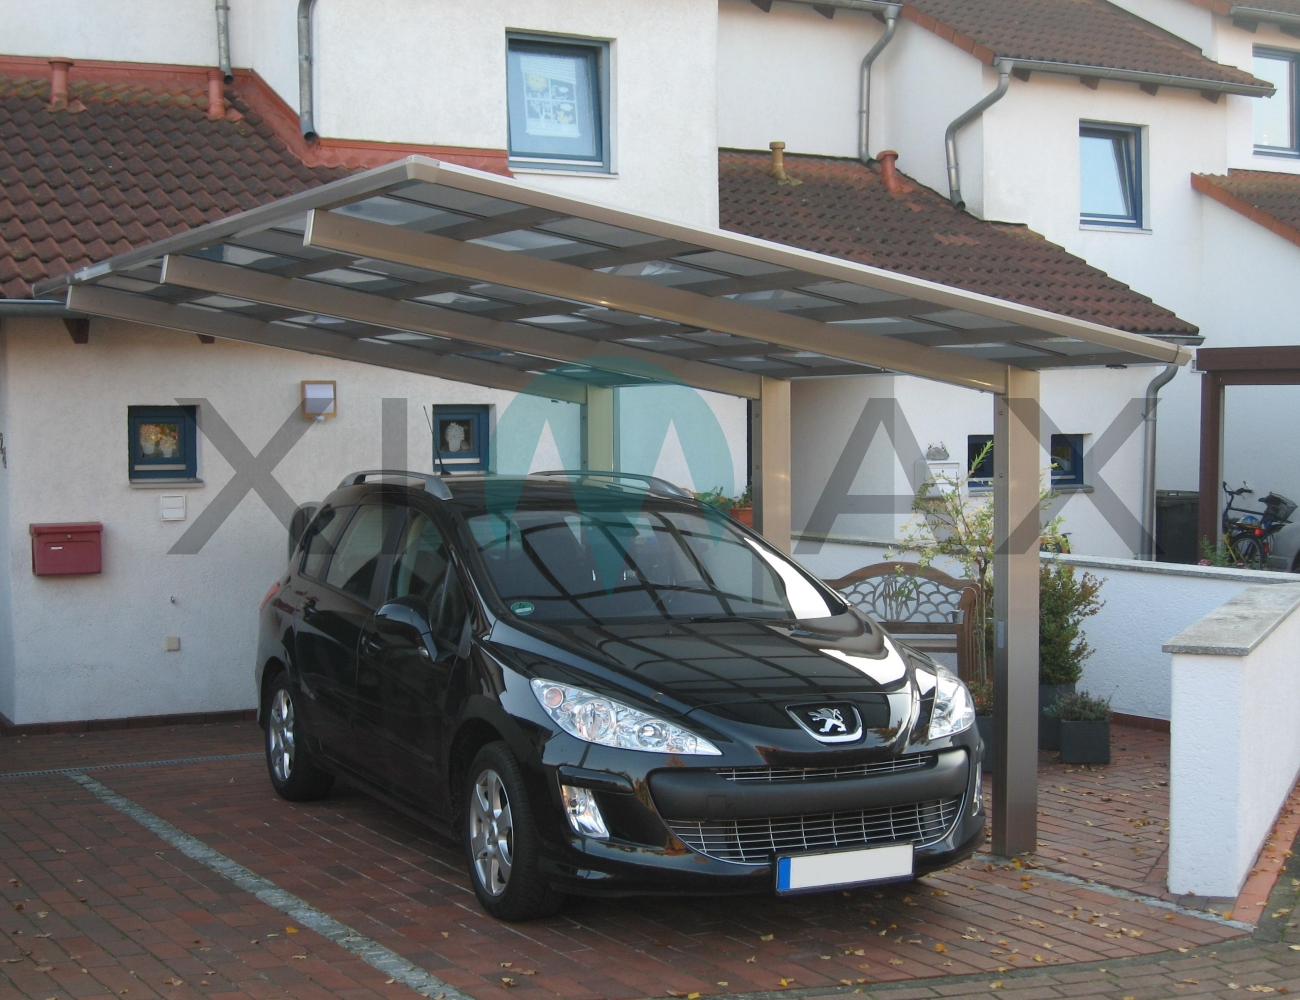 carports doppelcarport aus metall holz ziller. Black Bedroom Furniture Sets. Home Design Ideas